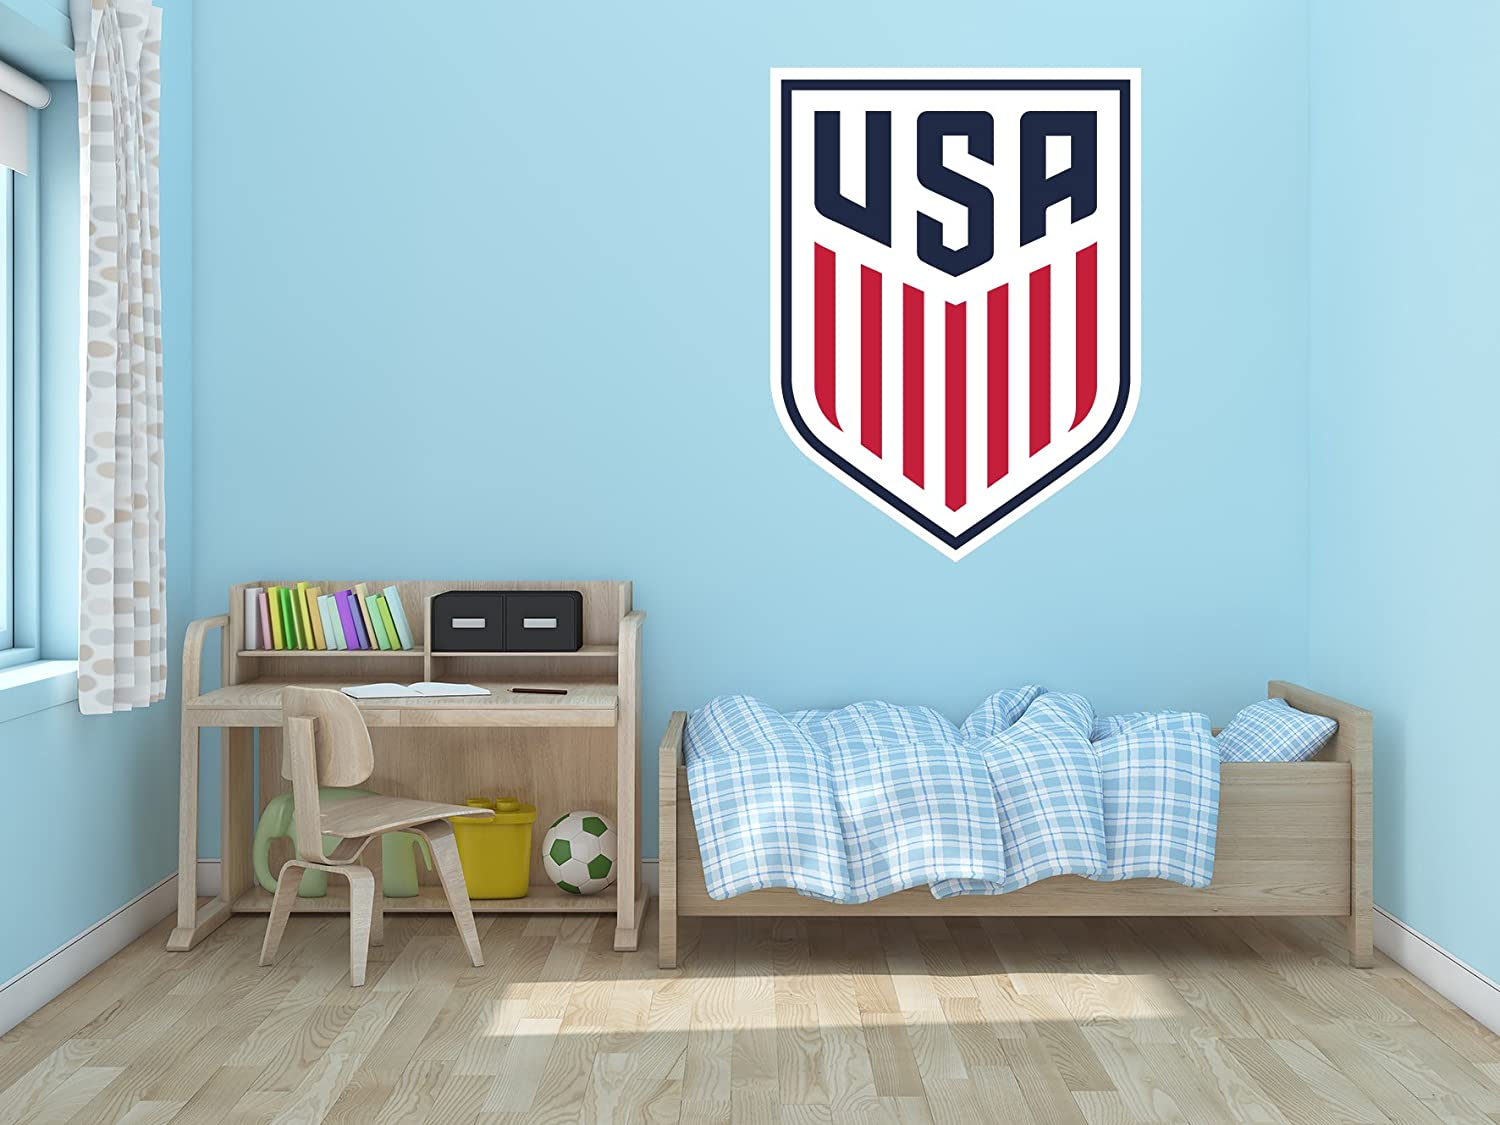 """Ottosdecal National Soccer Team - Wall Decal Vinyl Sticker for Home Interior Decoration Bedroom, Laptop, Window, Mirror, Car (20"""" x 27"""")"""